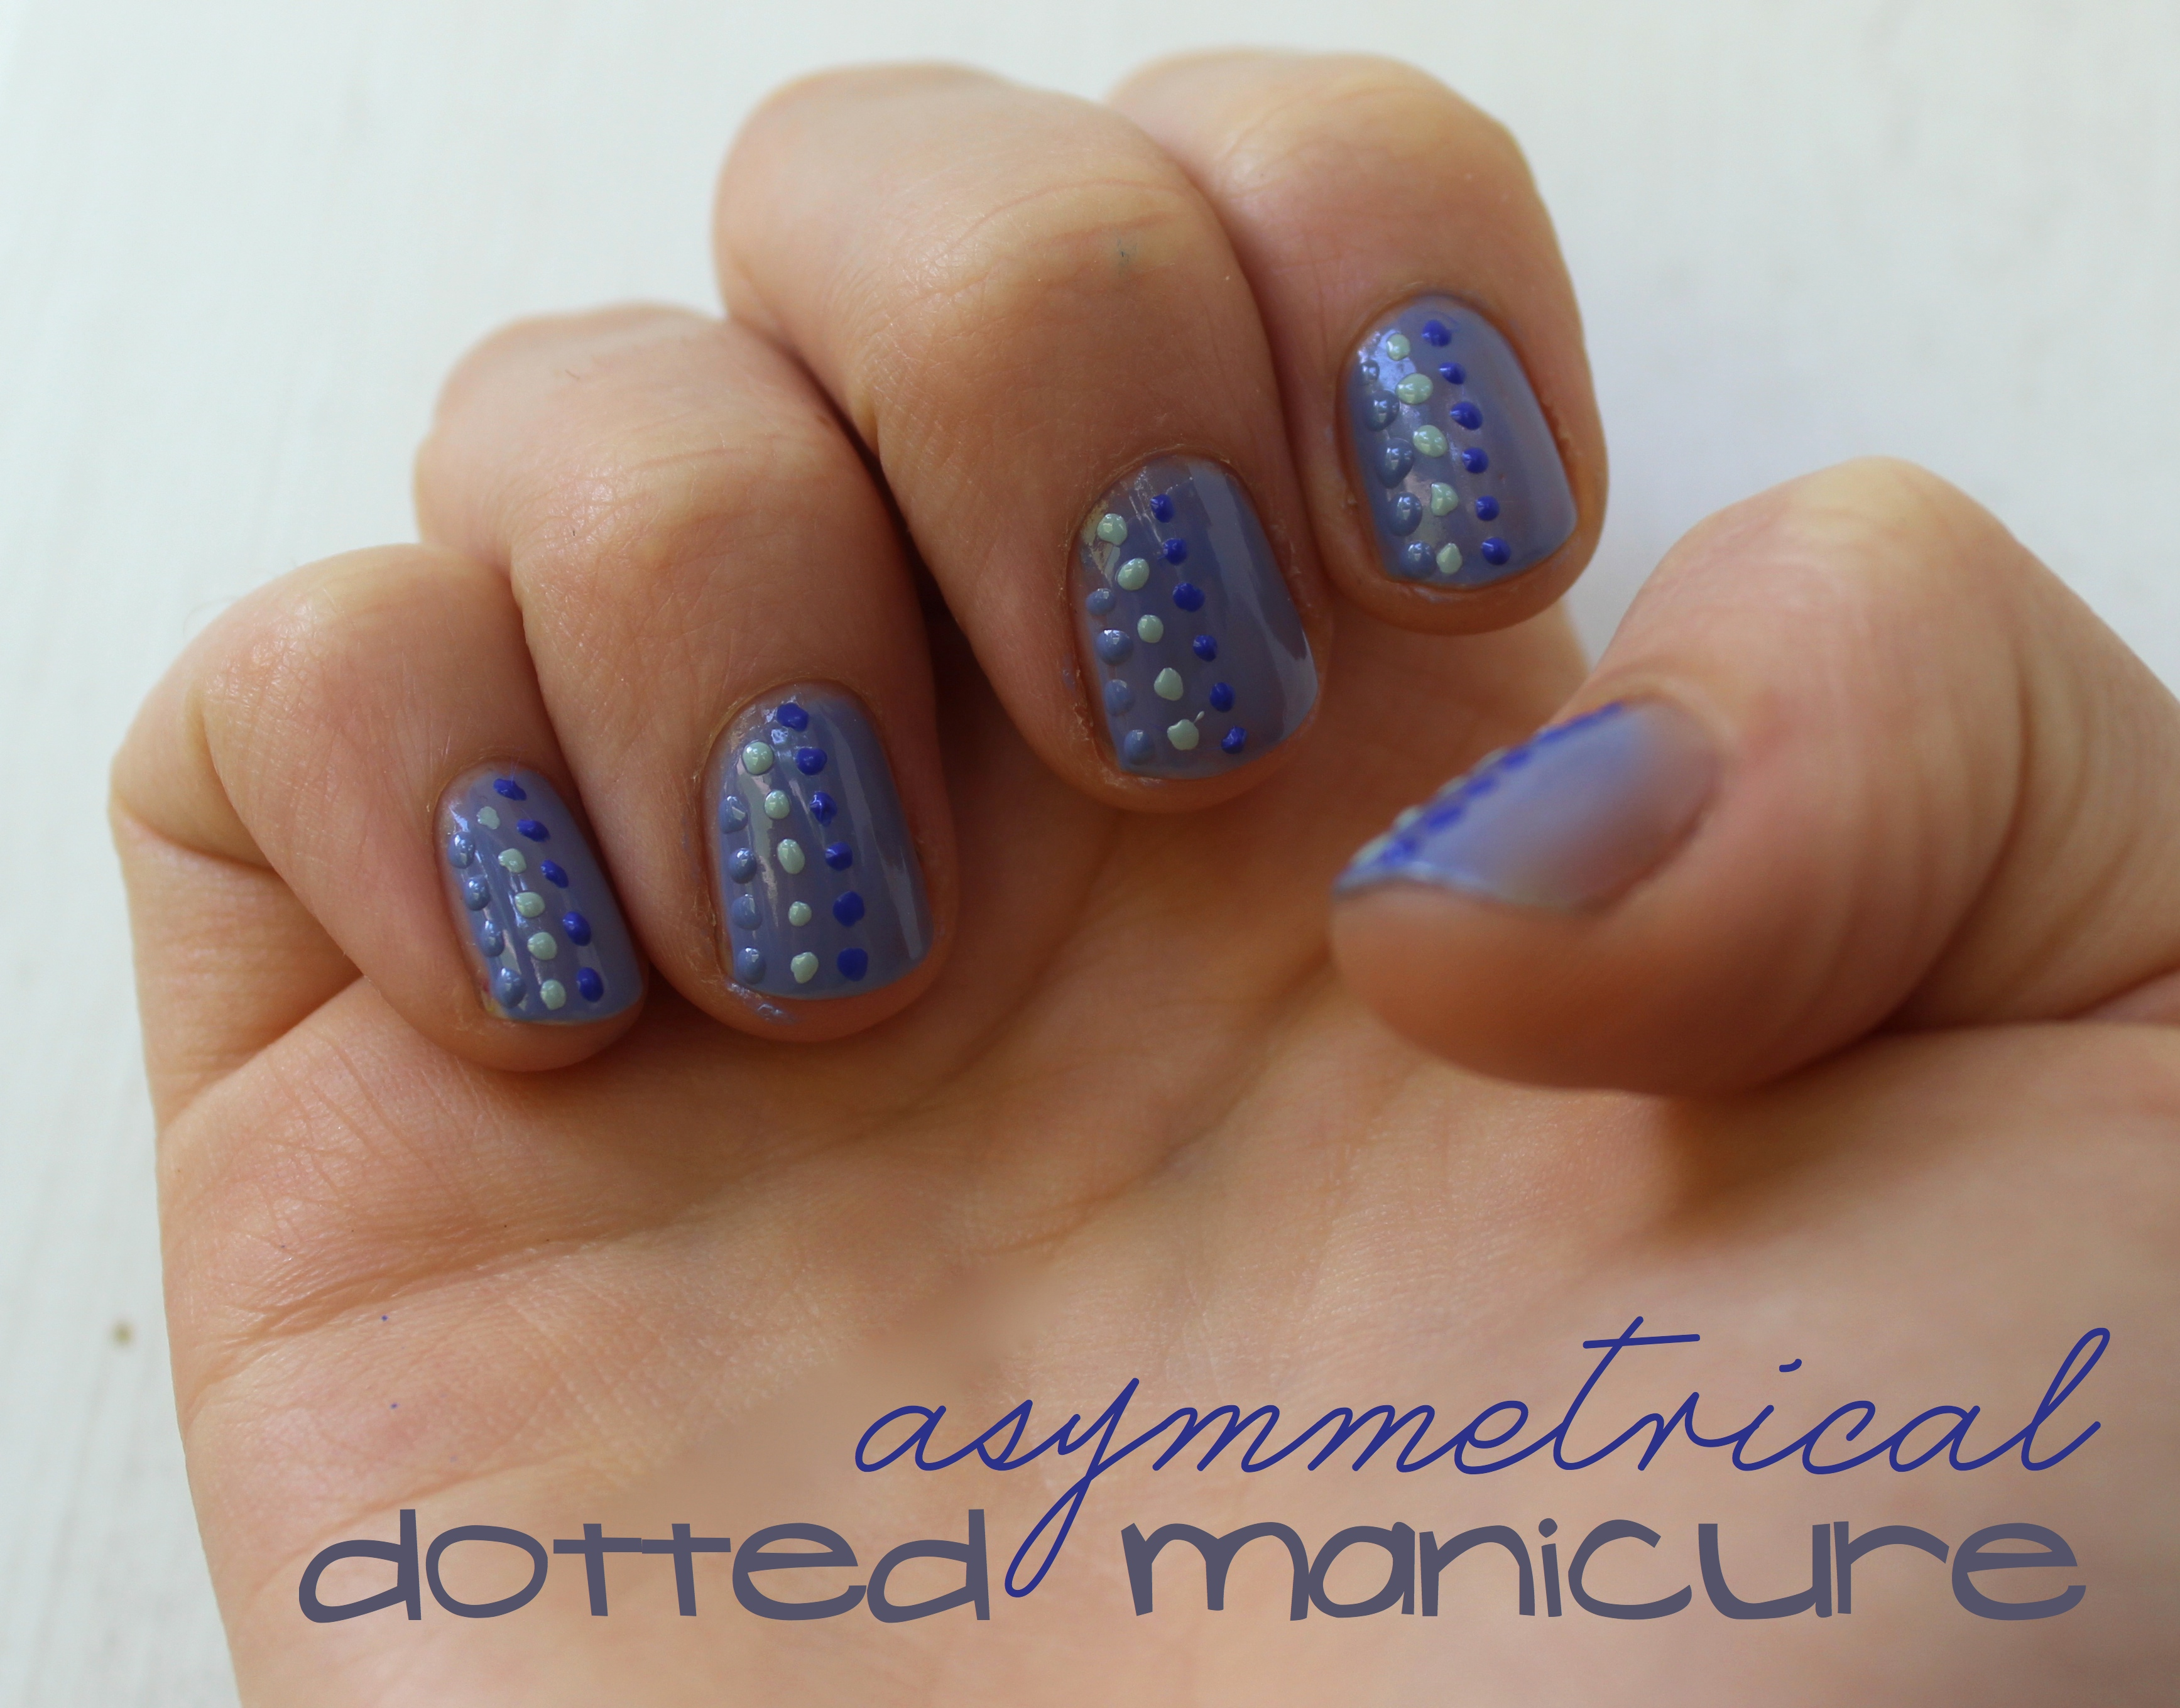 Asymmetrical Dotted Manicure